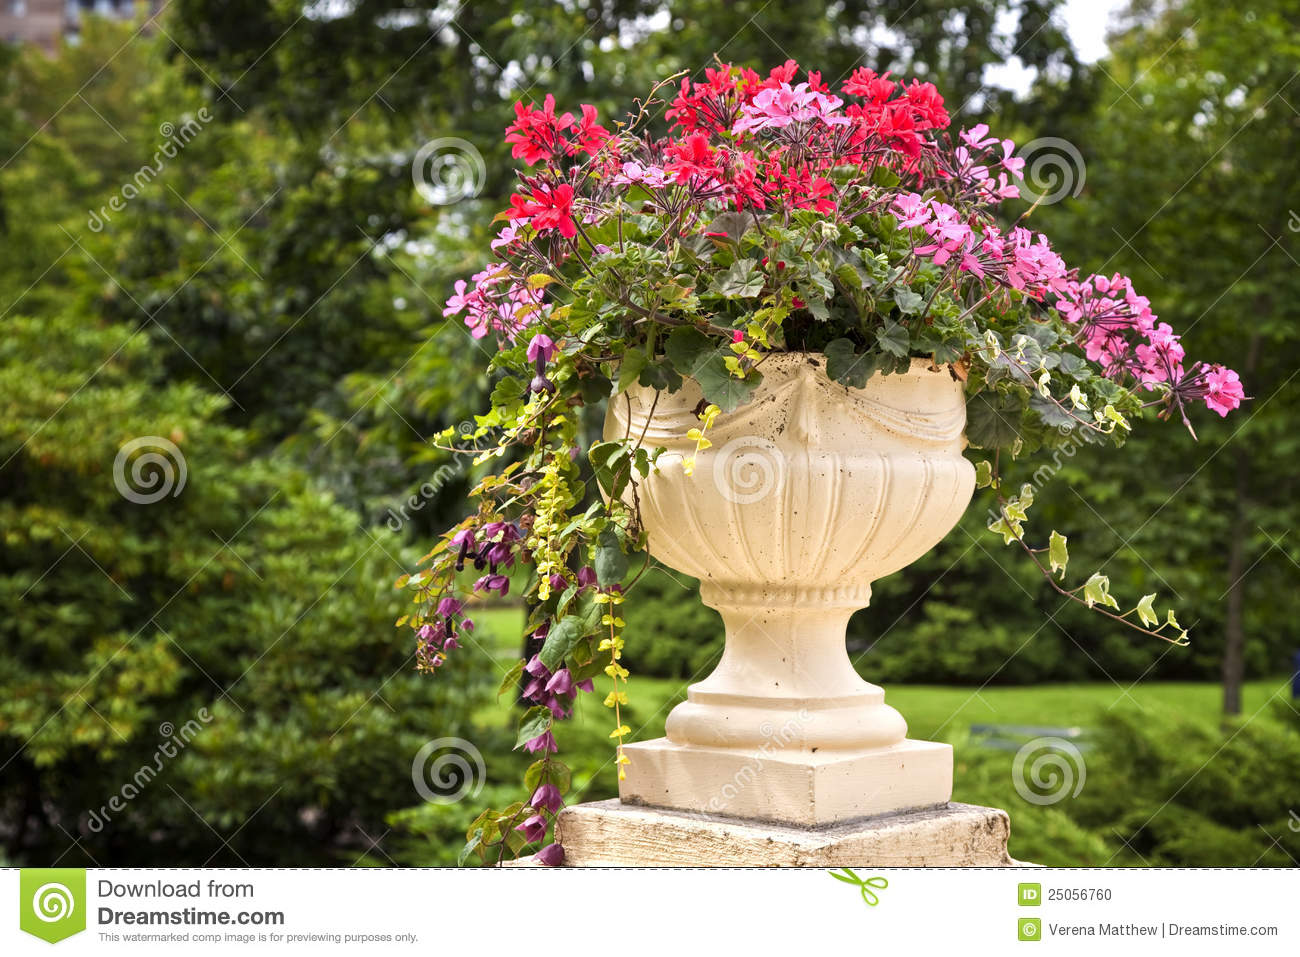 Dreamstime.com & Pedestal Garden Planters stock photo. Image of green - 25056760